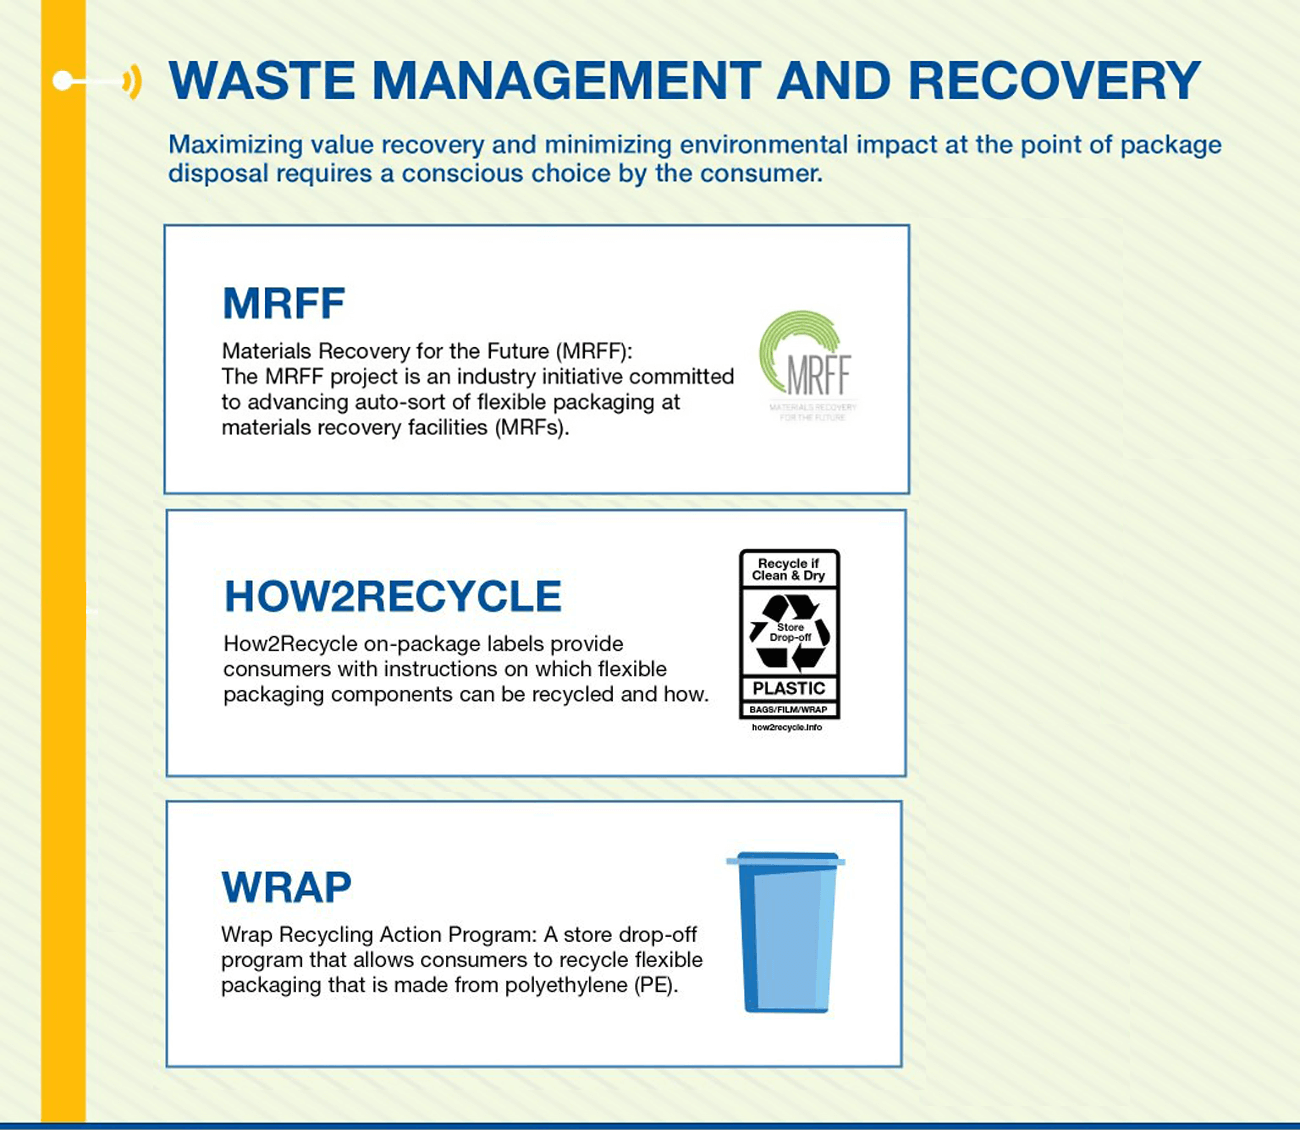 Waste Management and Recovery Infographic